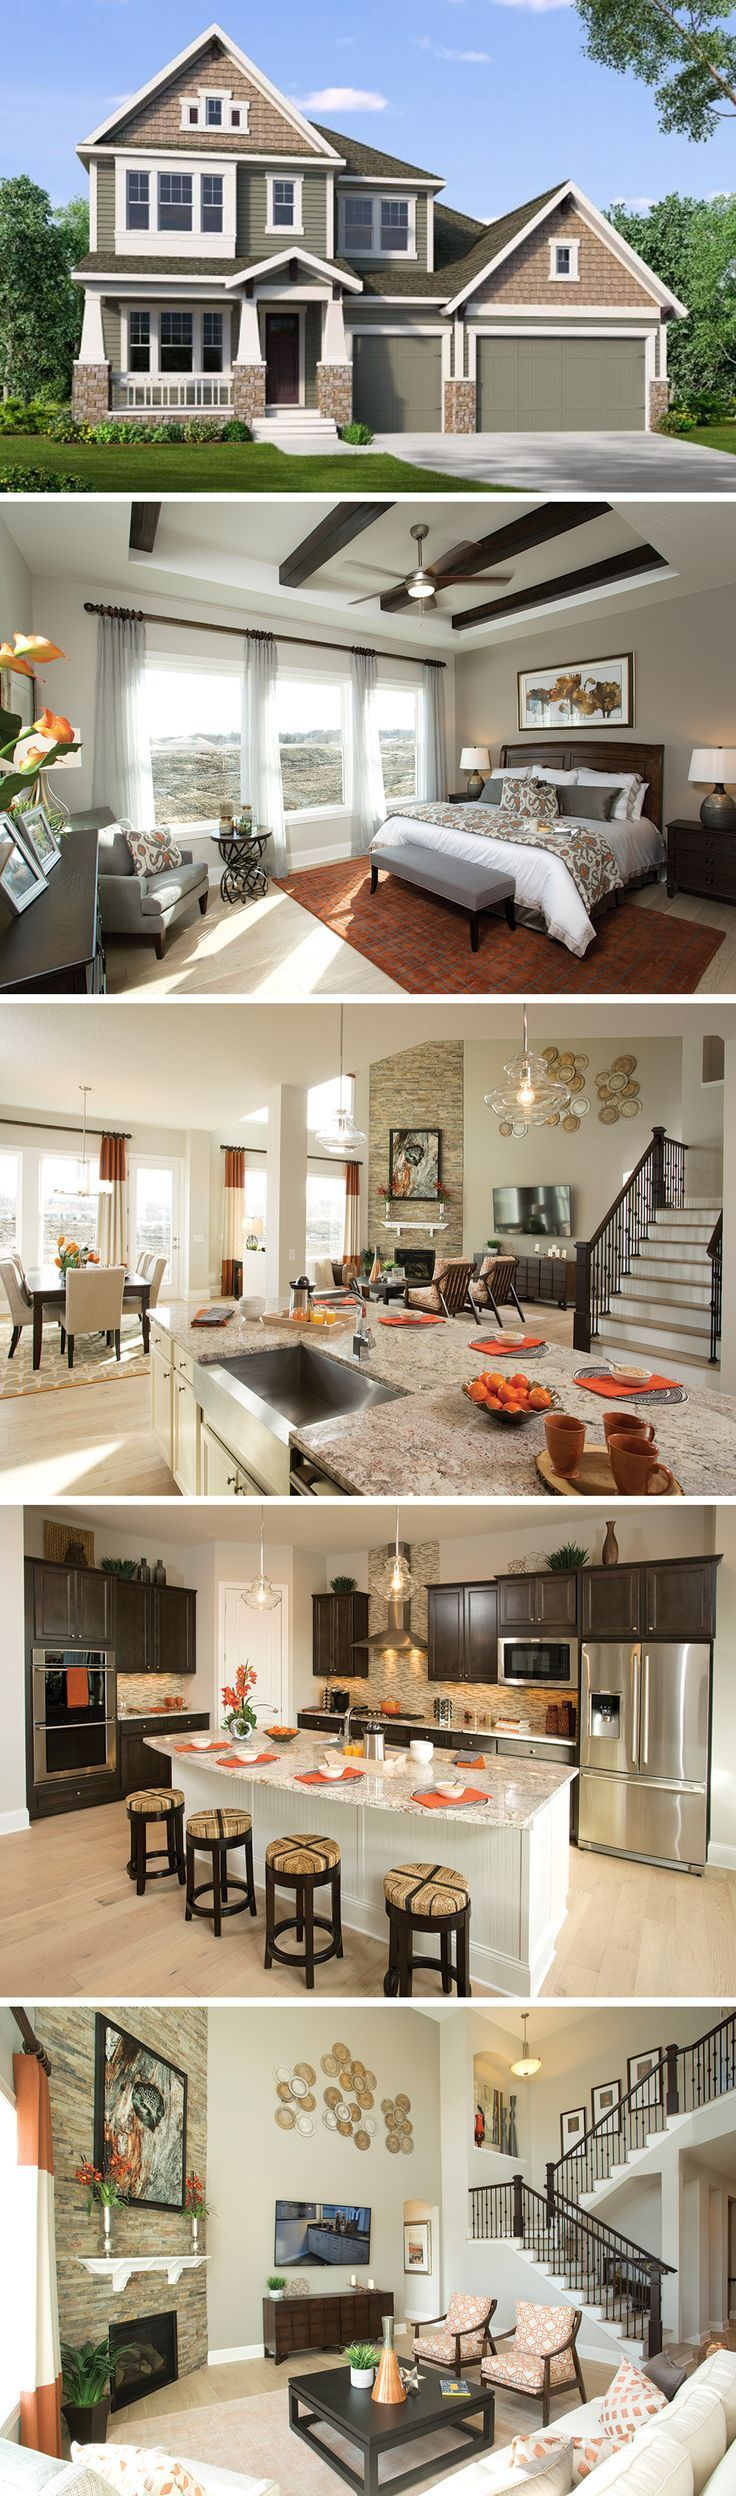 best dream house images on pinterest home ideas future house